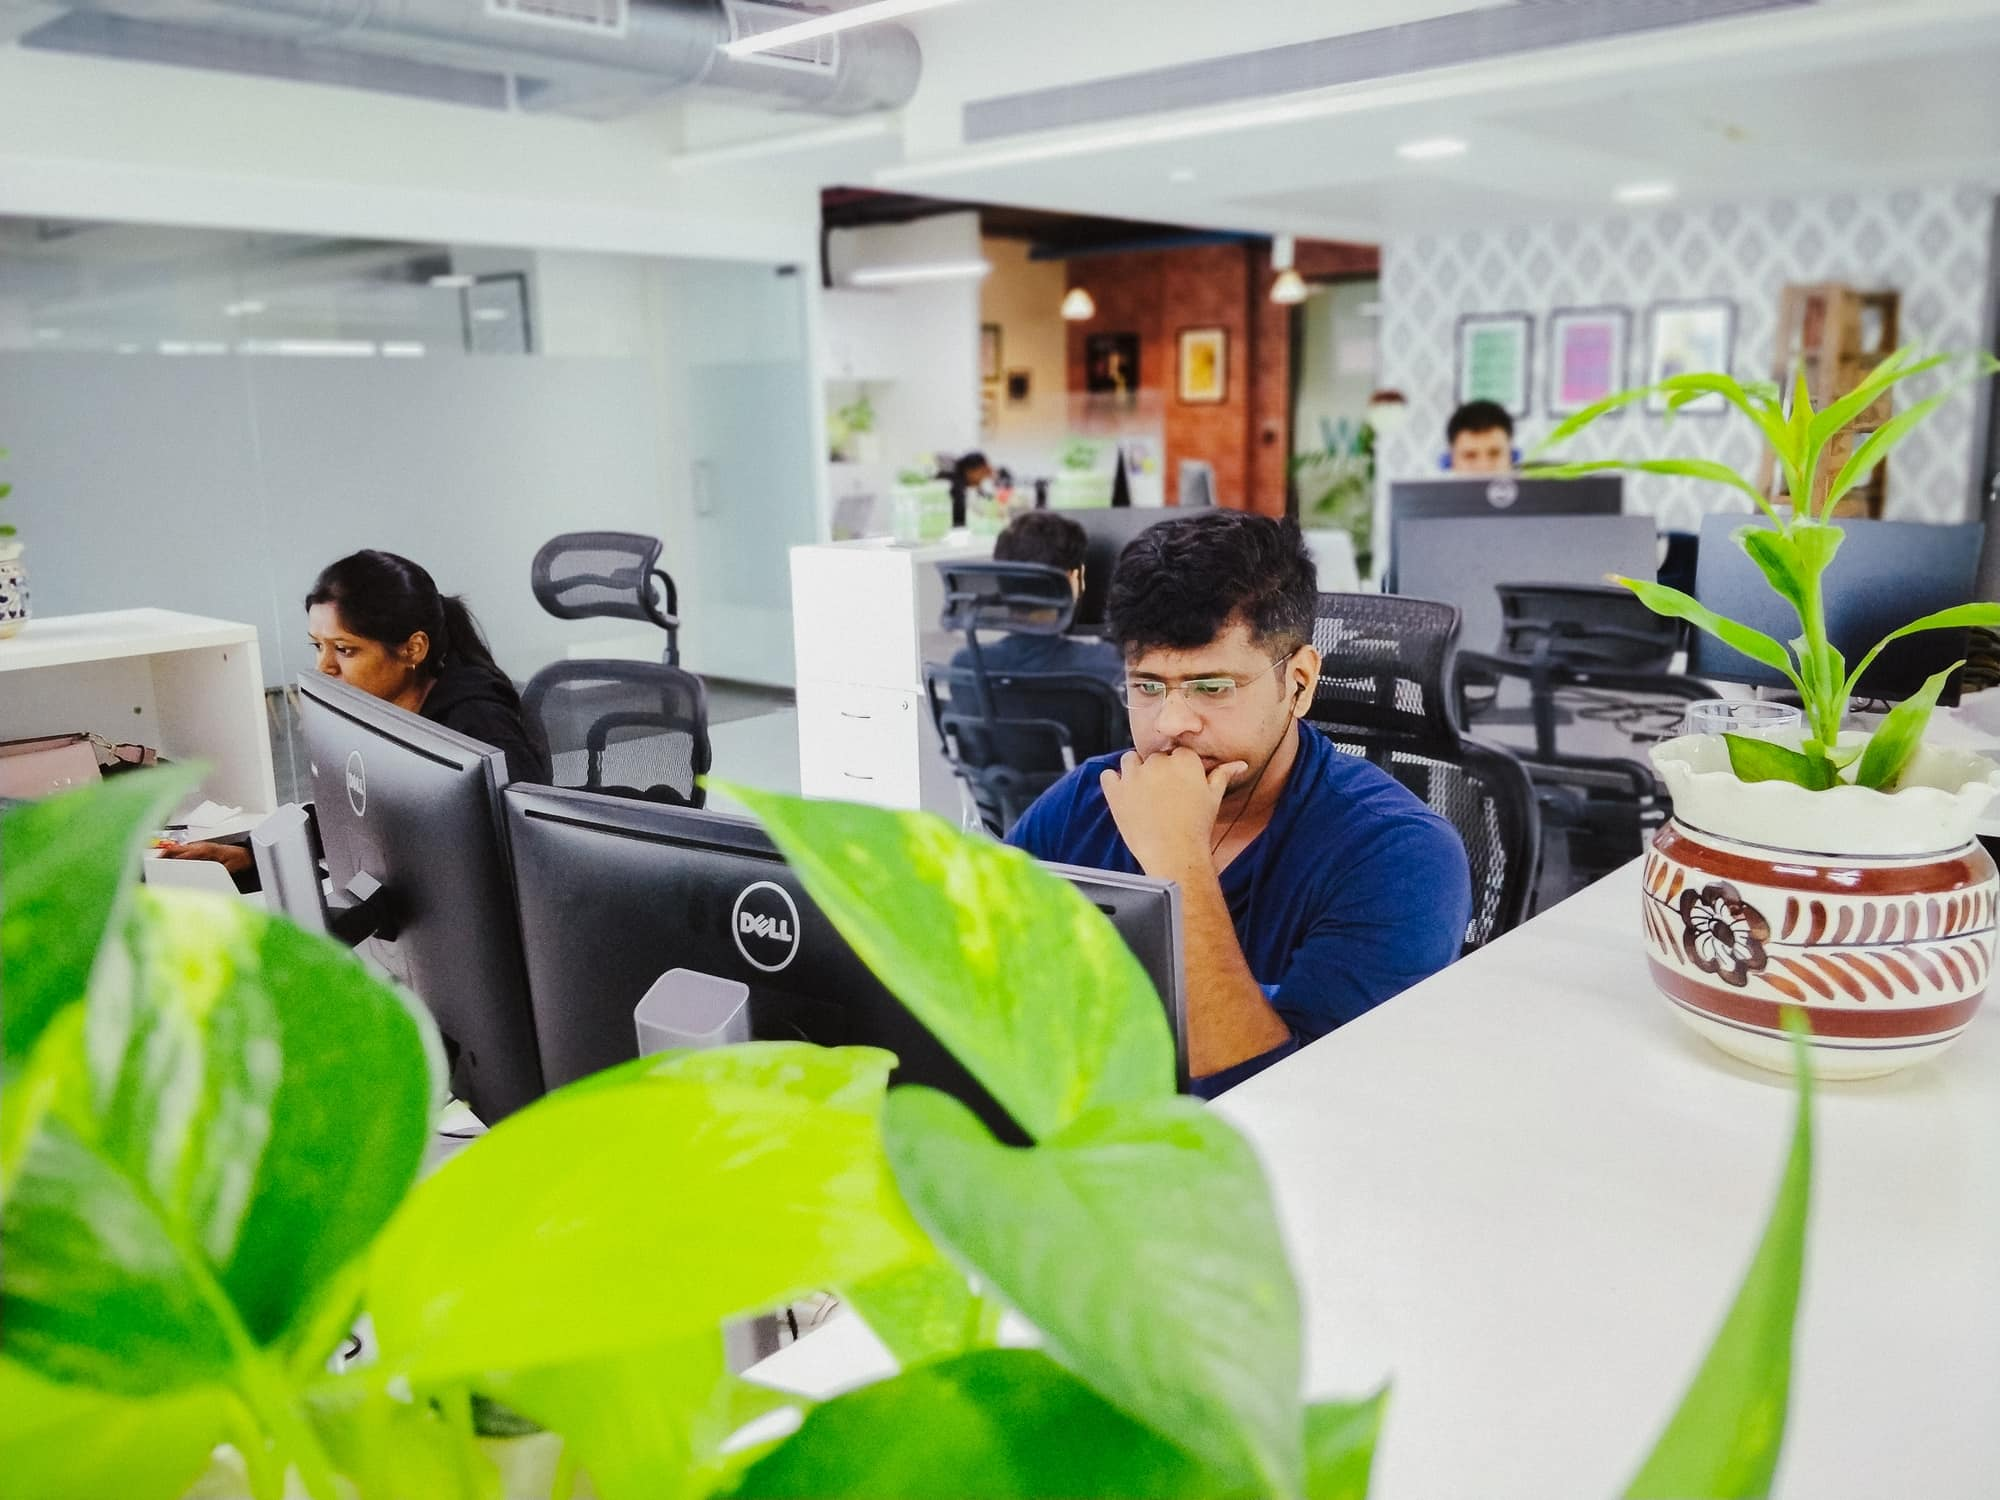 Focused coworkers in an office landscape in Mumbai.